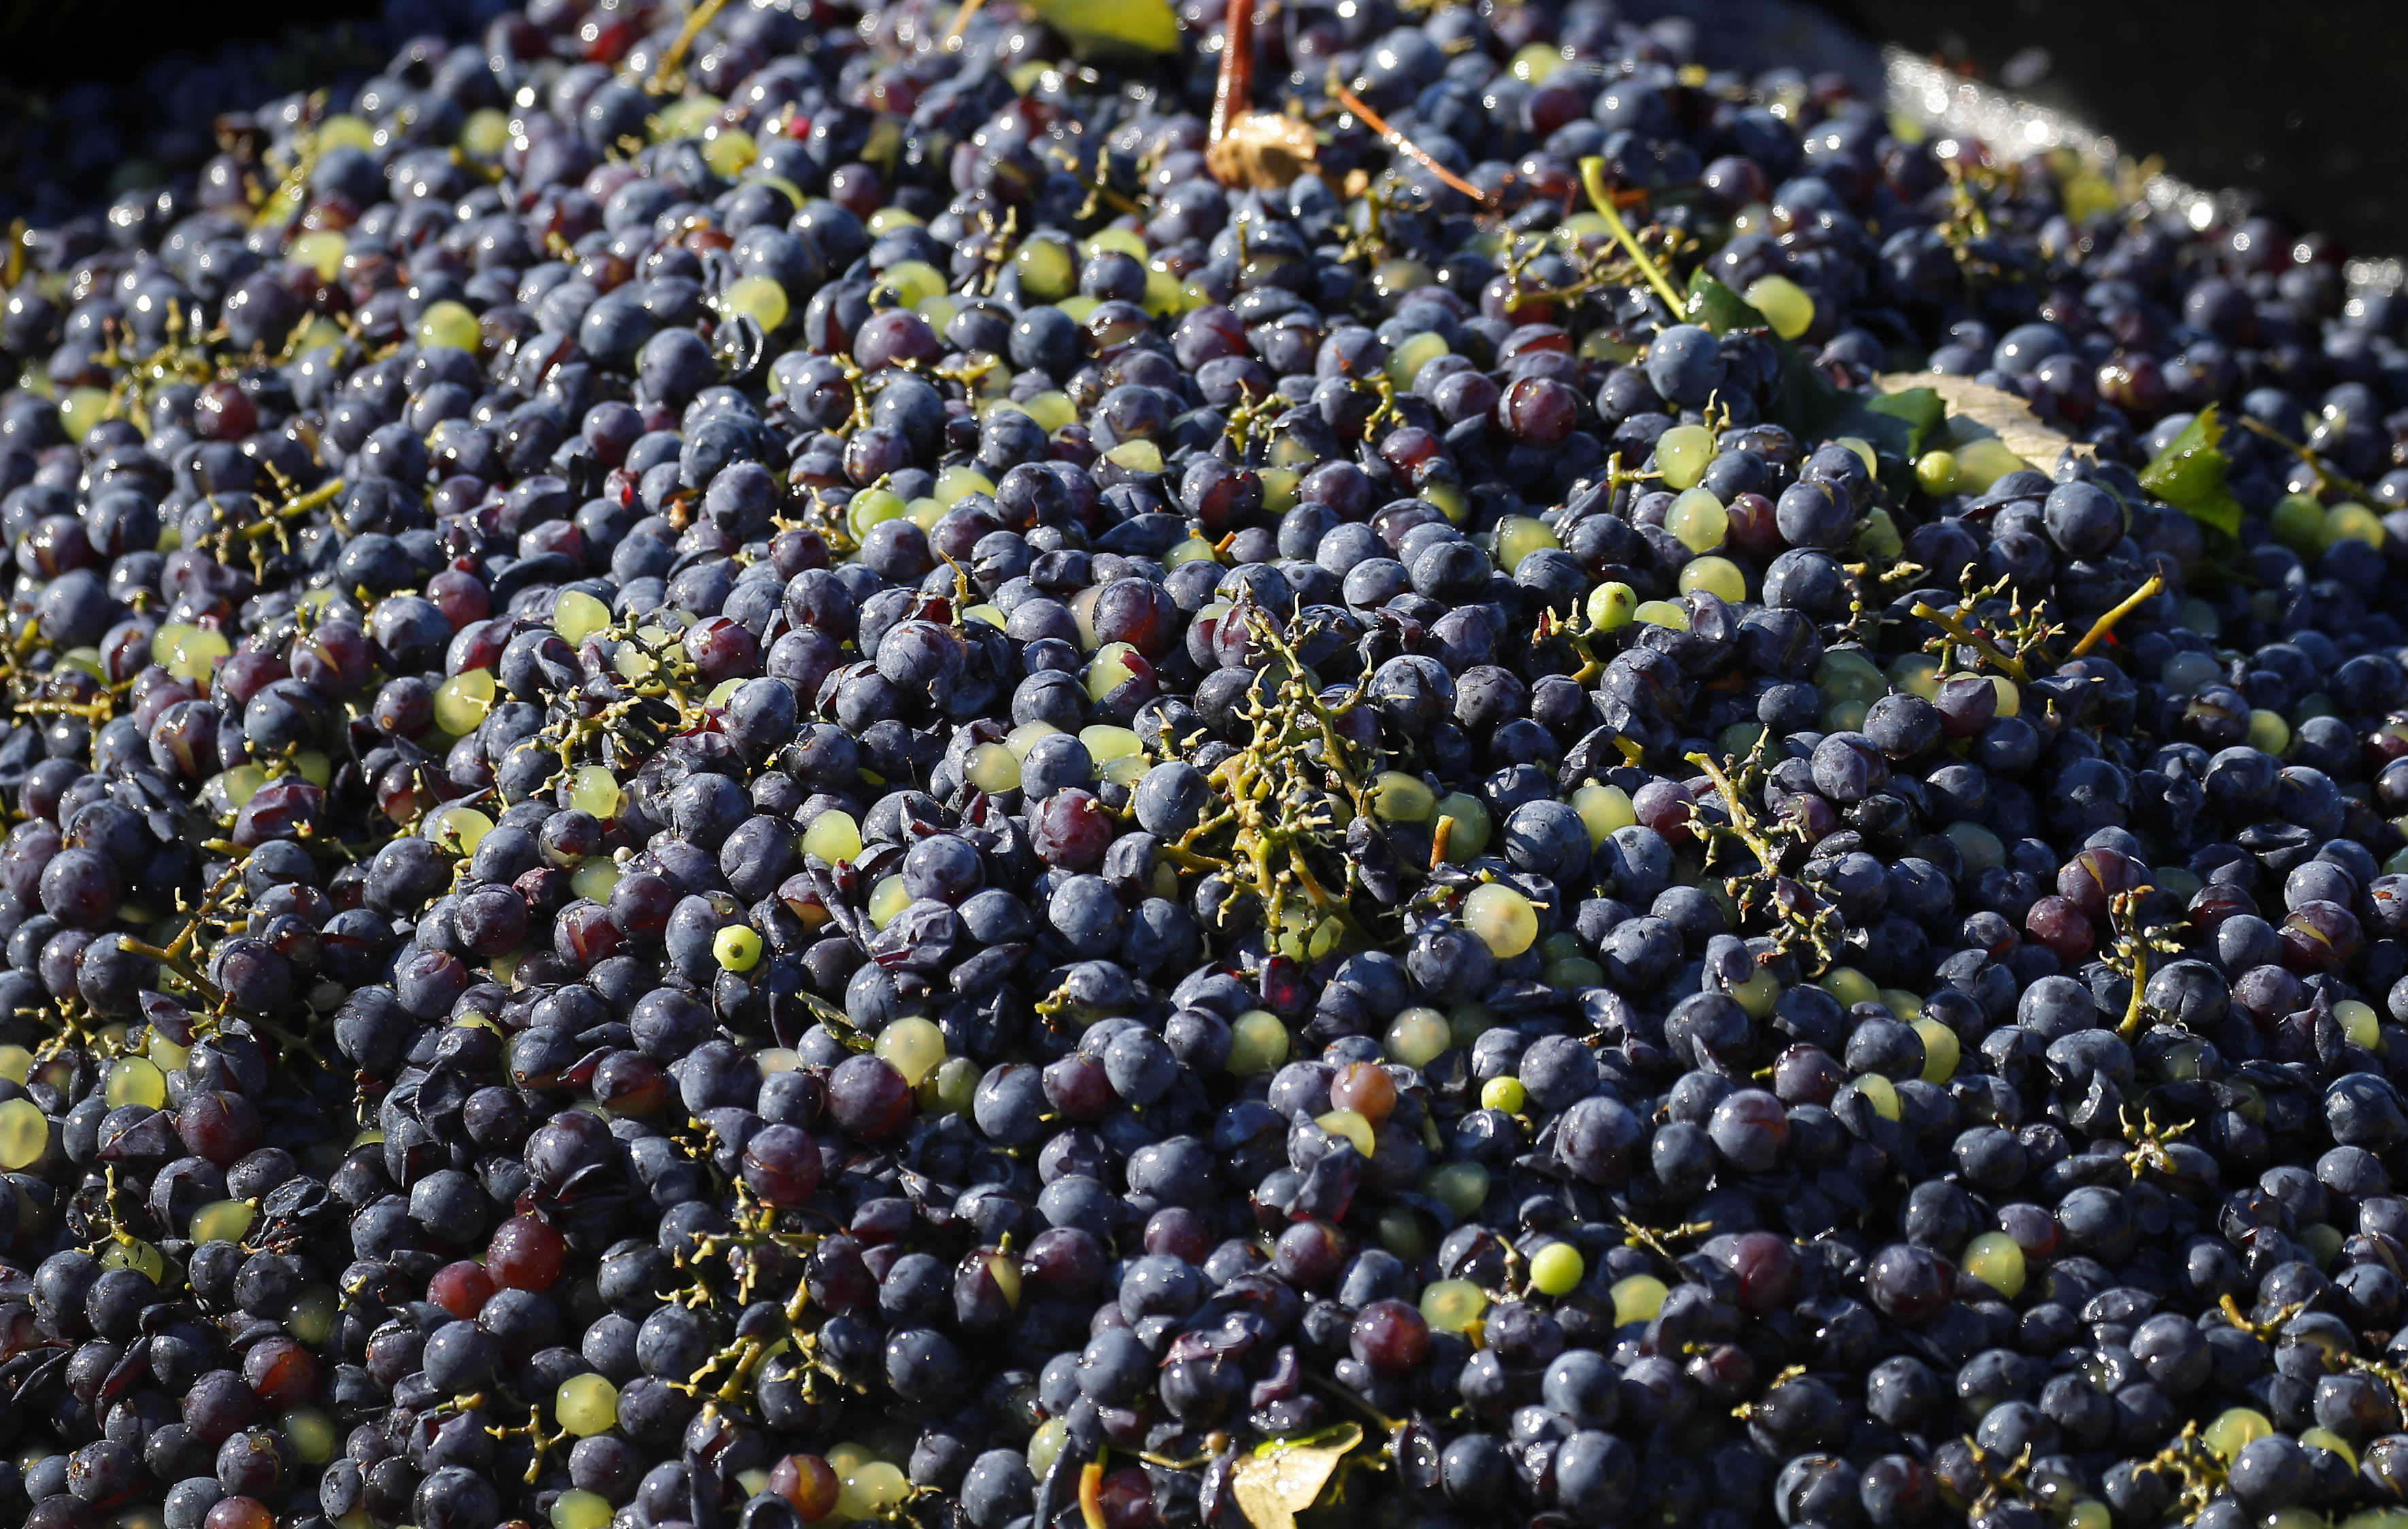 A bin of freshly harvested Concord grapes at Knight Vineyards in Ripley Tuesday, Oct. 4, 2016. One bin holds about a ton of grapes. (Mark Mulville/Buffalo News)